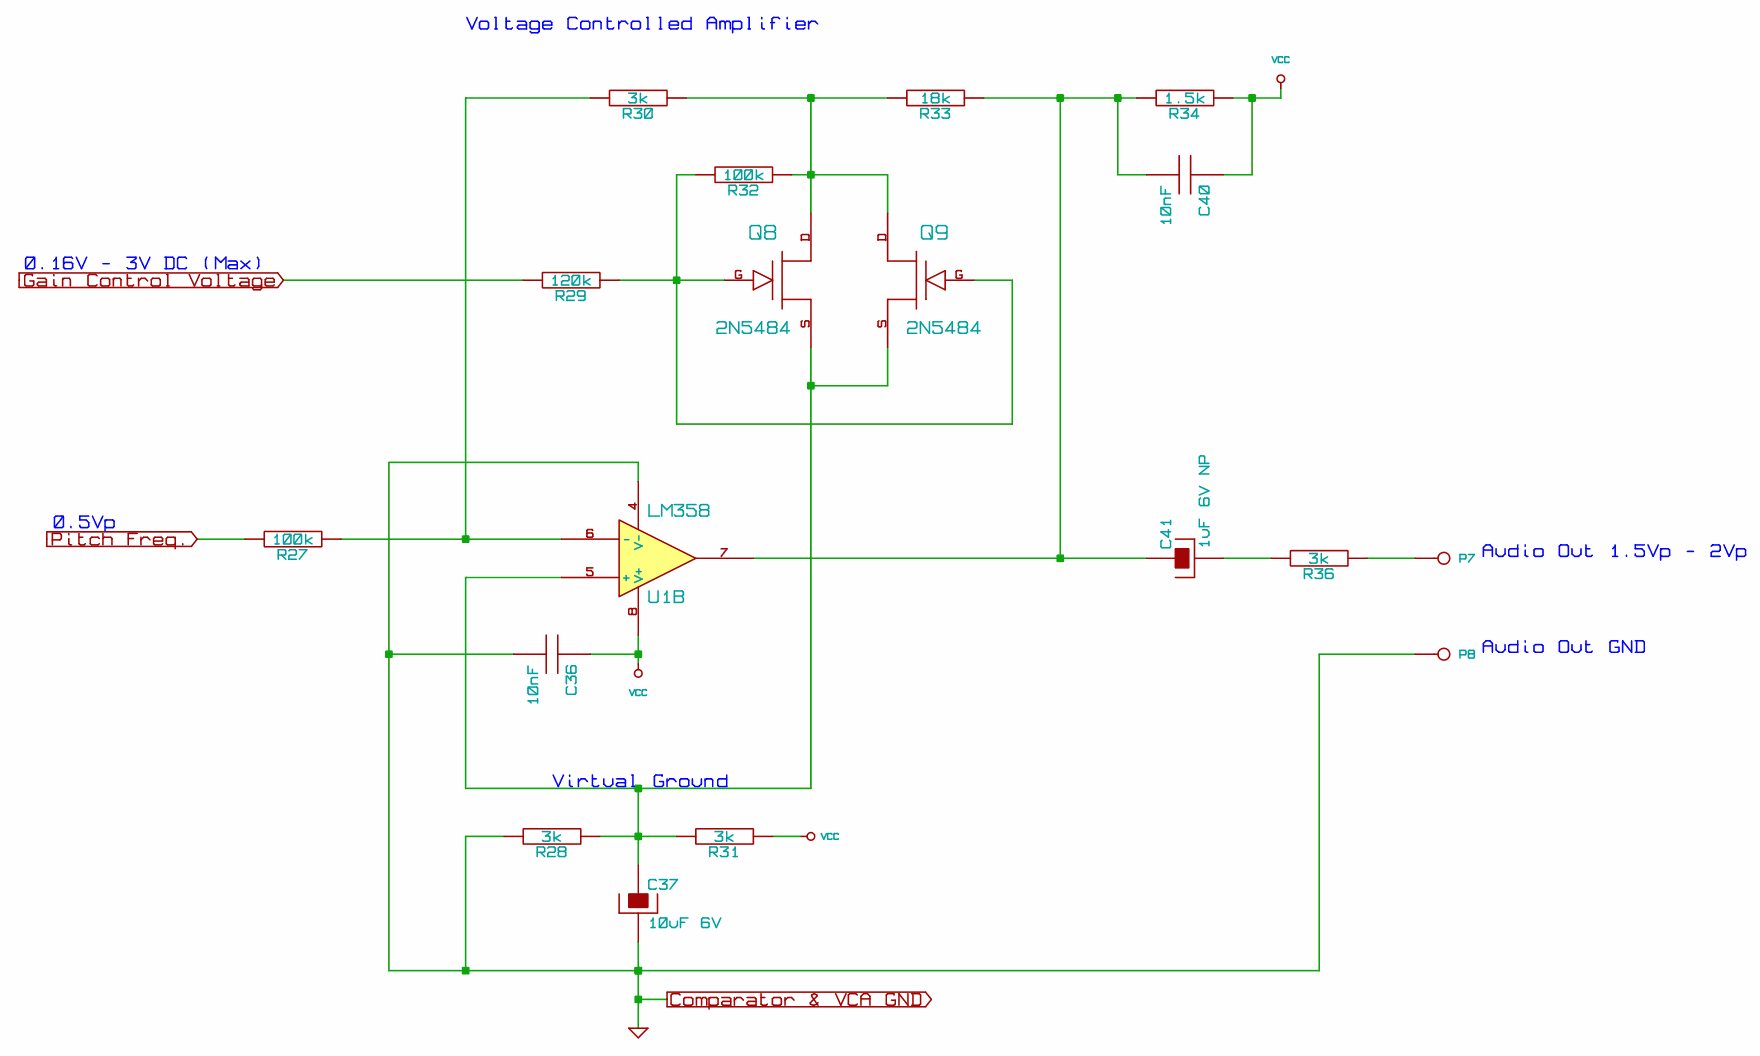 Building A Theremin Deak Software Voltage Controlled Amplifier Circuit Design Figure 16 Click Image To Enlarge